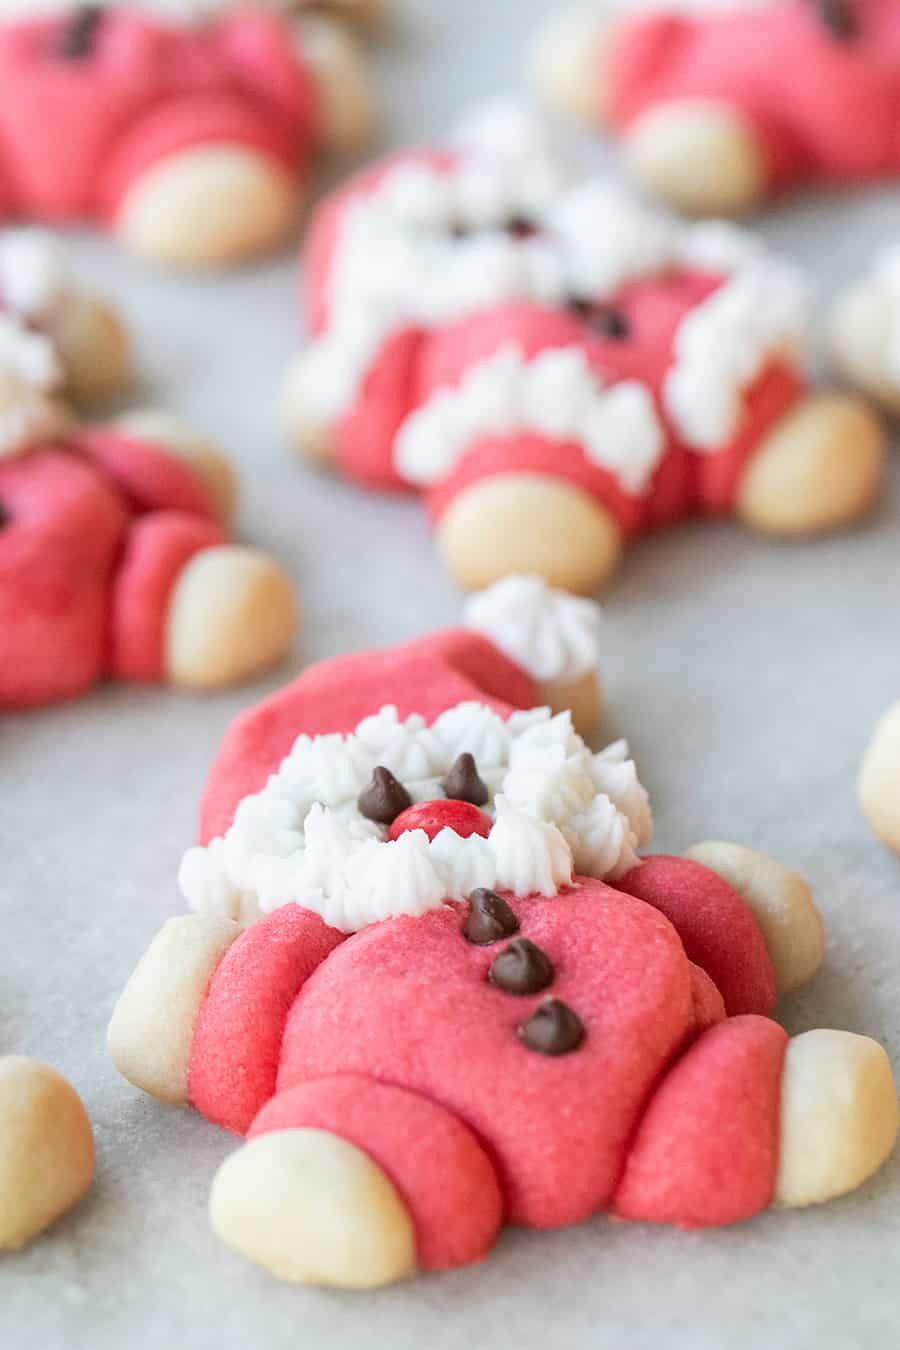 Santa cookies with chocolate chip eyes and a fluffy white beard.